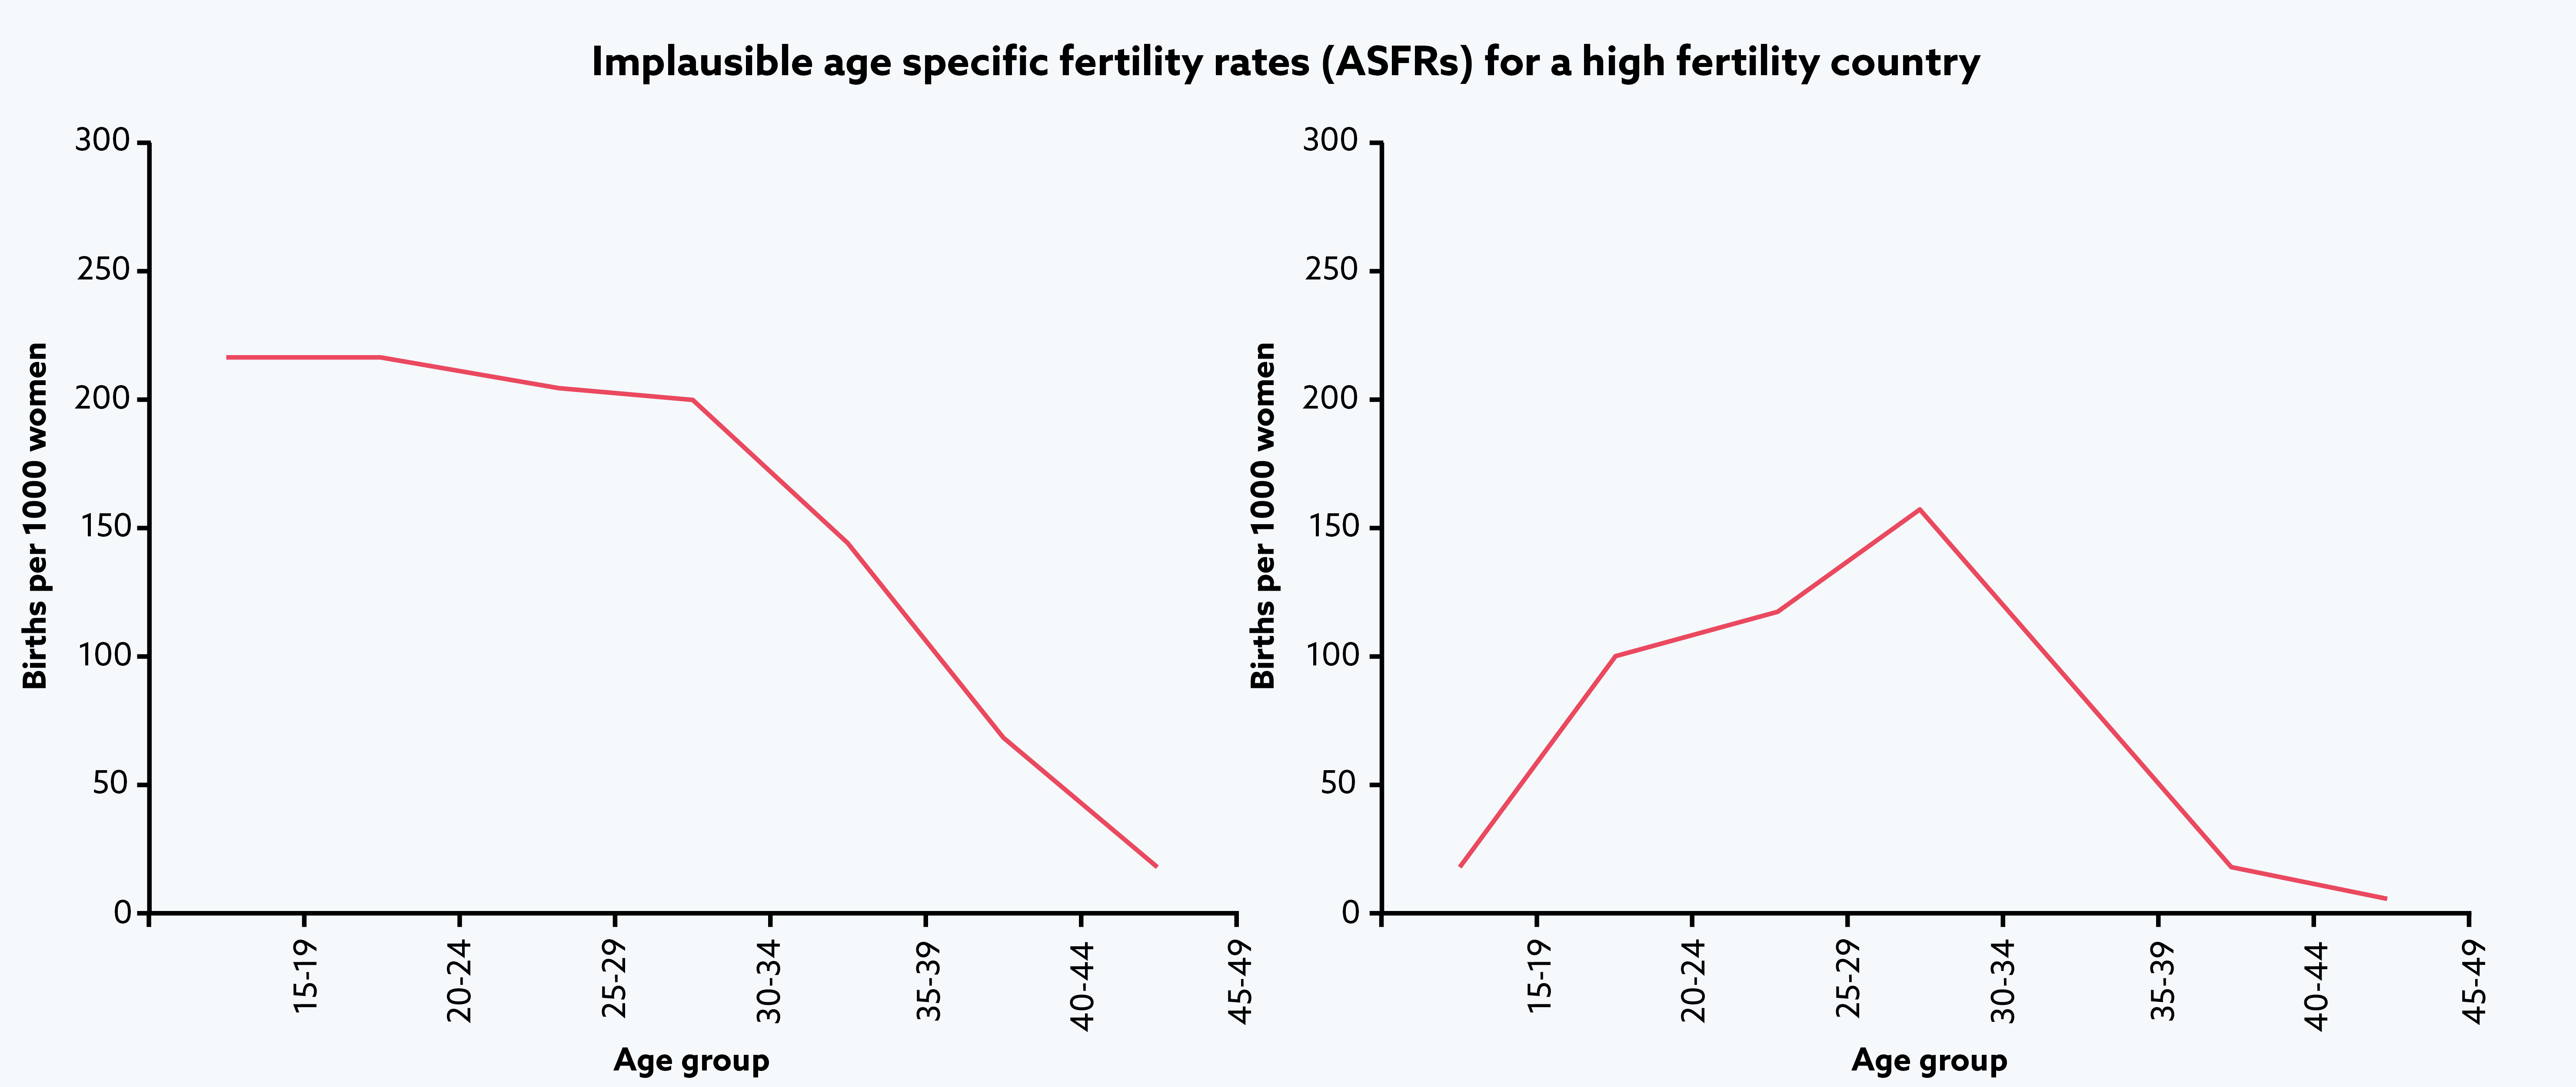 Implausible-ASFRs-high-fertility